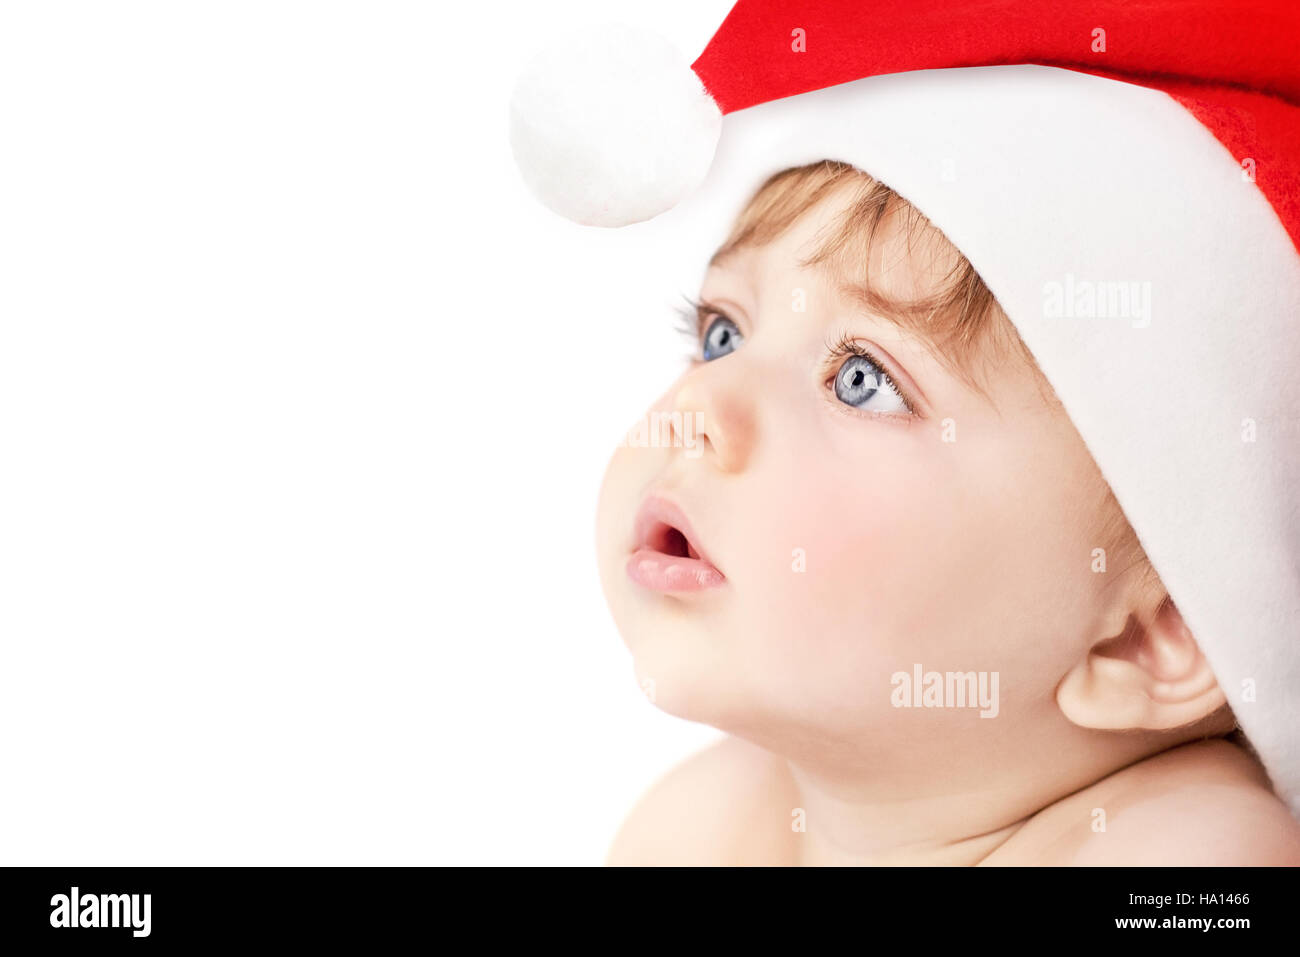 357cdab9f Closeup portrait of a cute little baby boy wearing red Santa Claus hat  isolated on white background, traditional Christmas costume